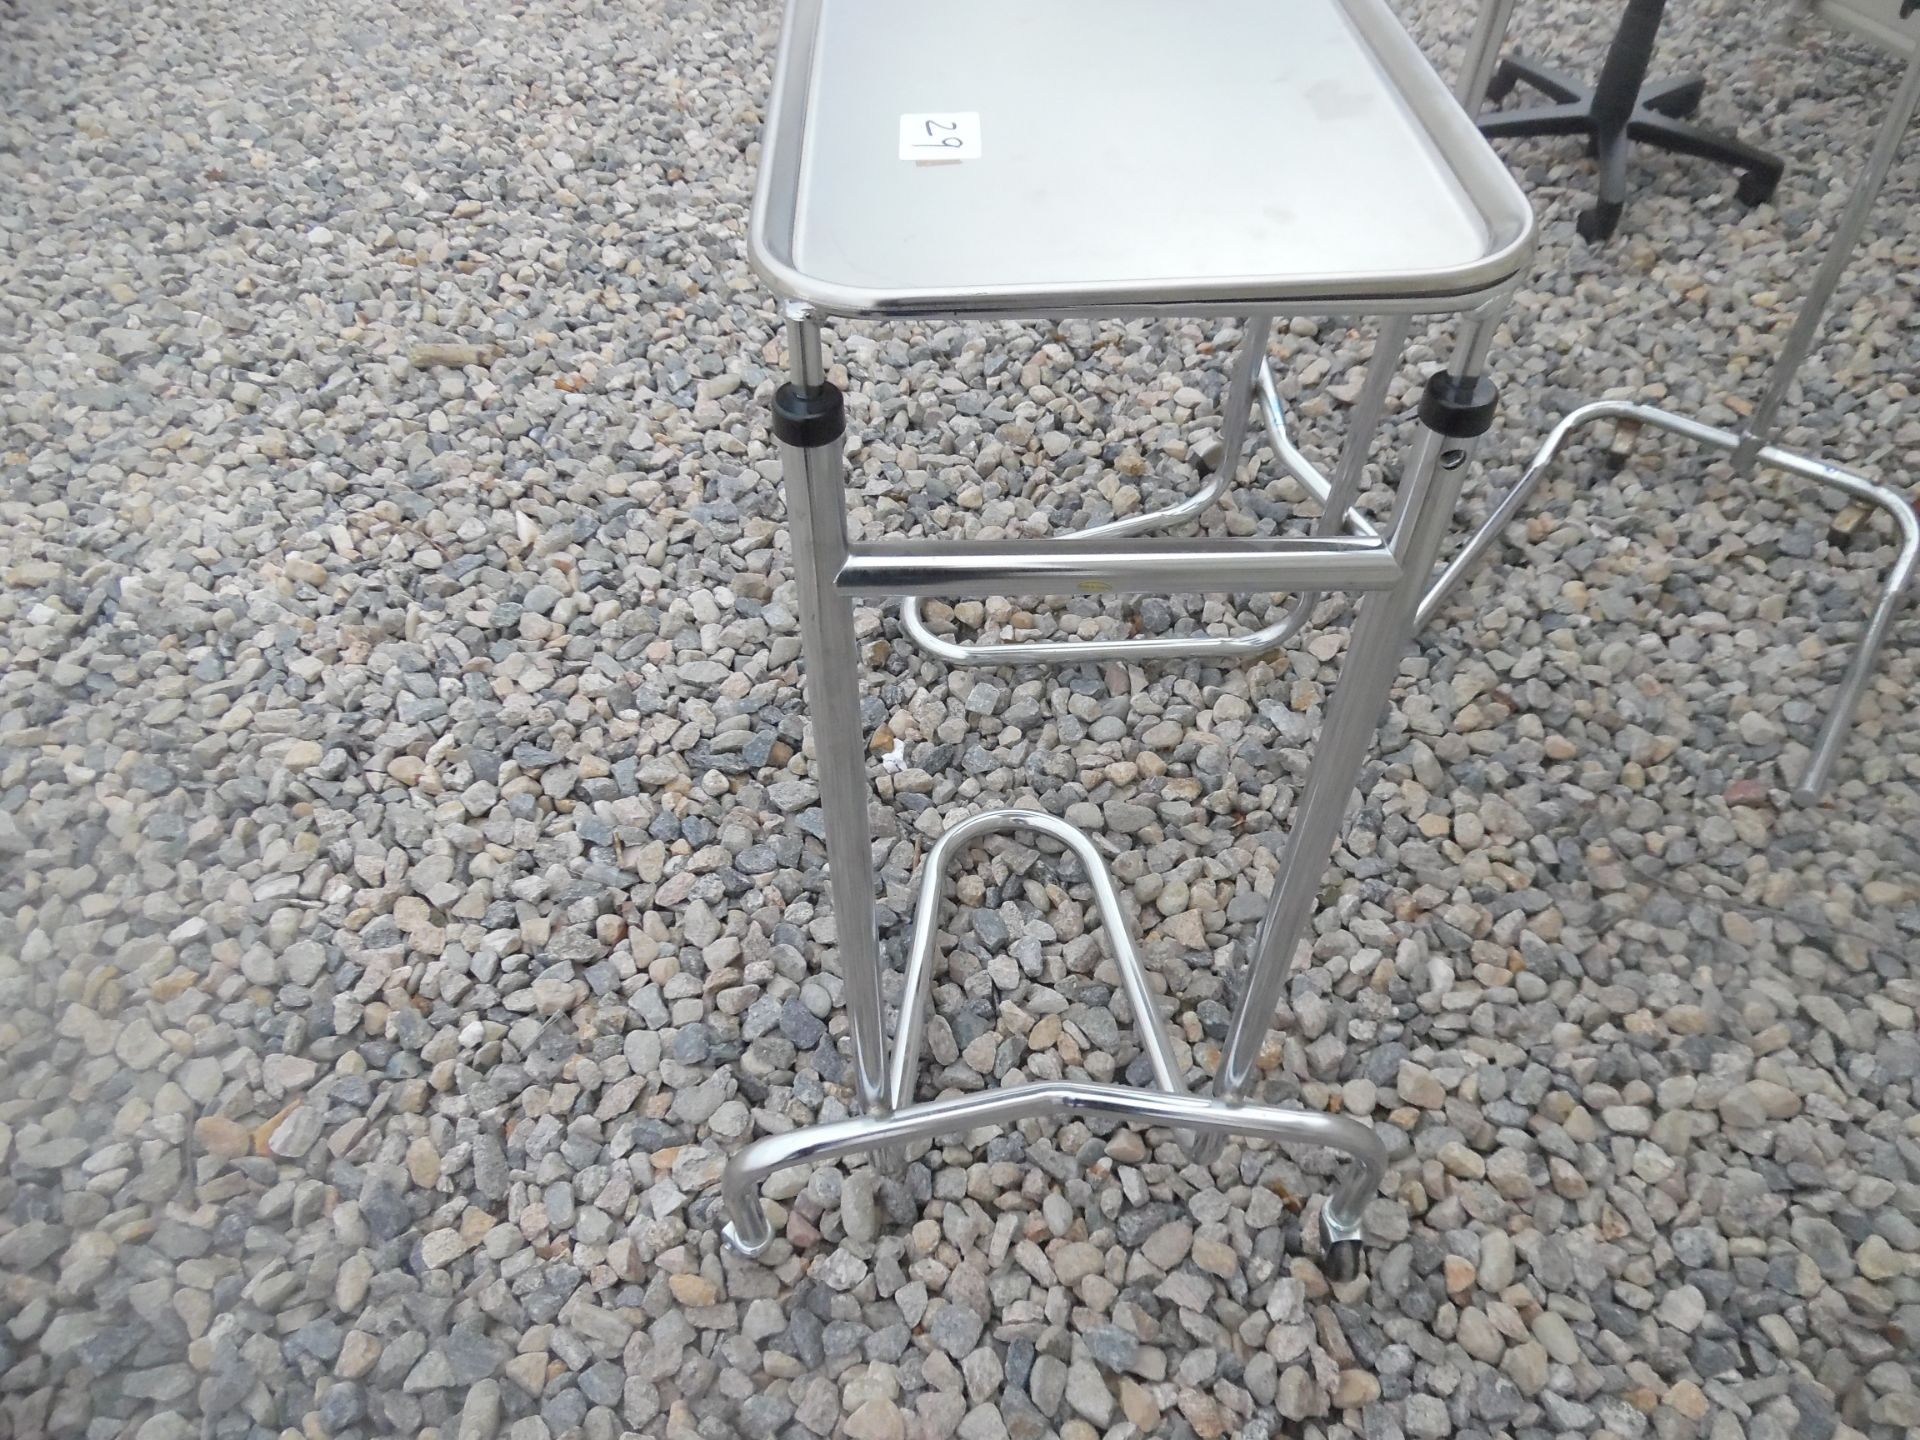 Lot of 3 Medical/surgical stands with trays. - Image 4 of 4